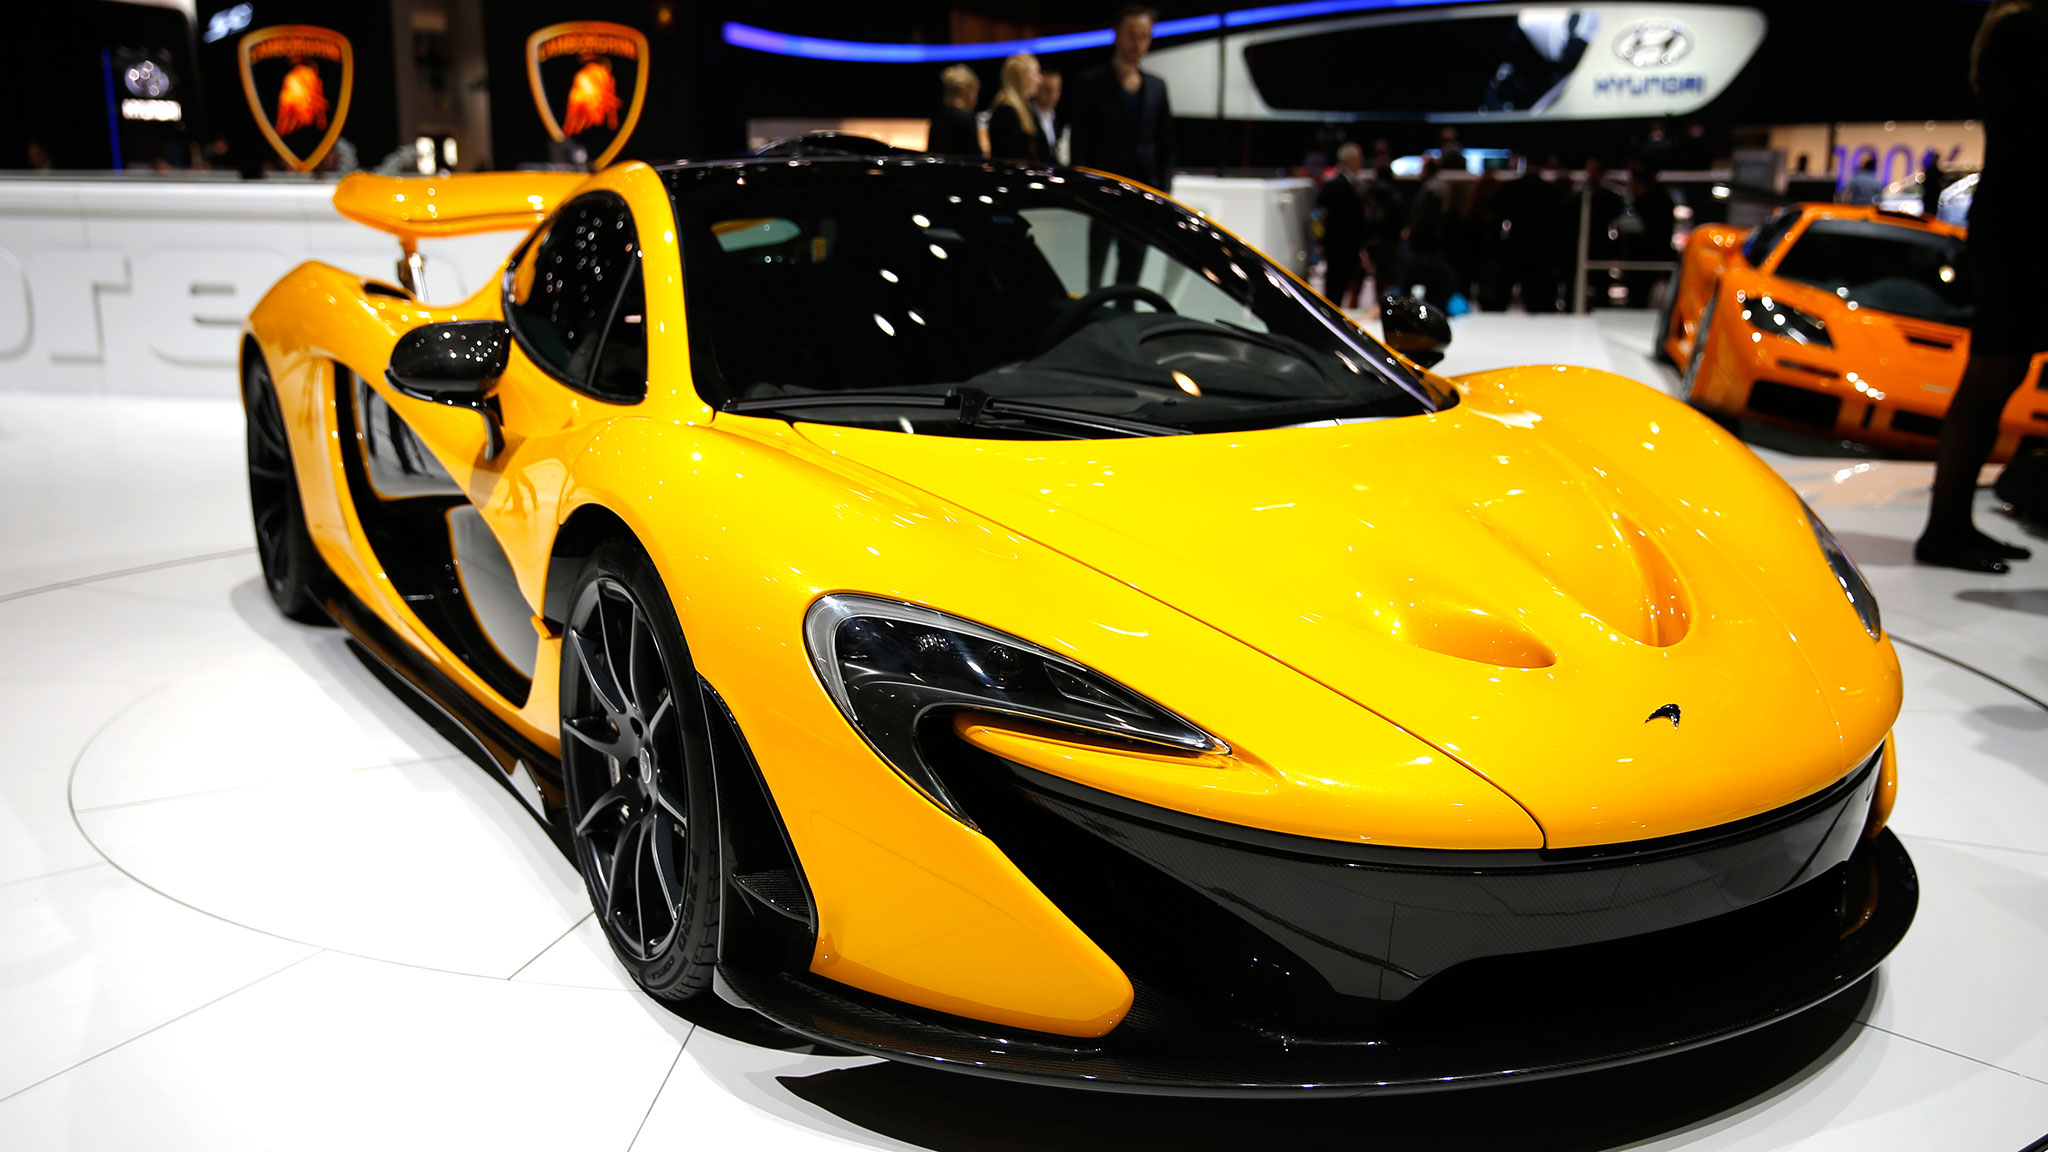 Supercar maker McLaren sees profits fall after research drive ...